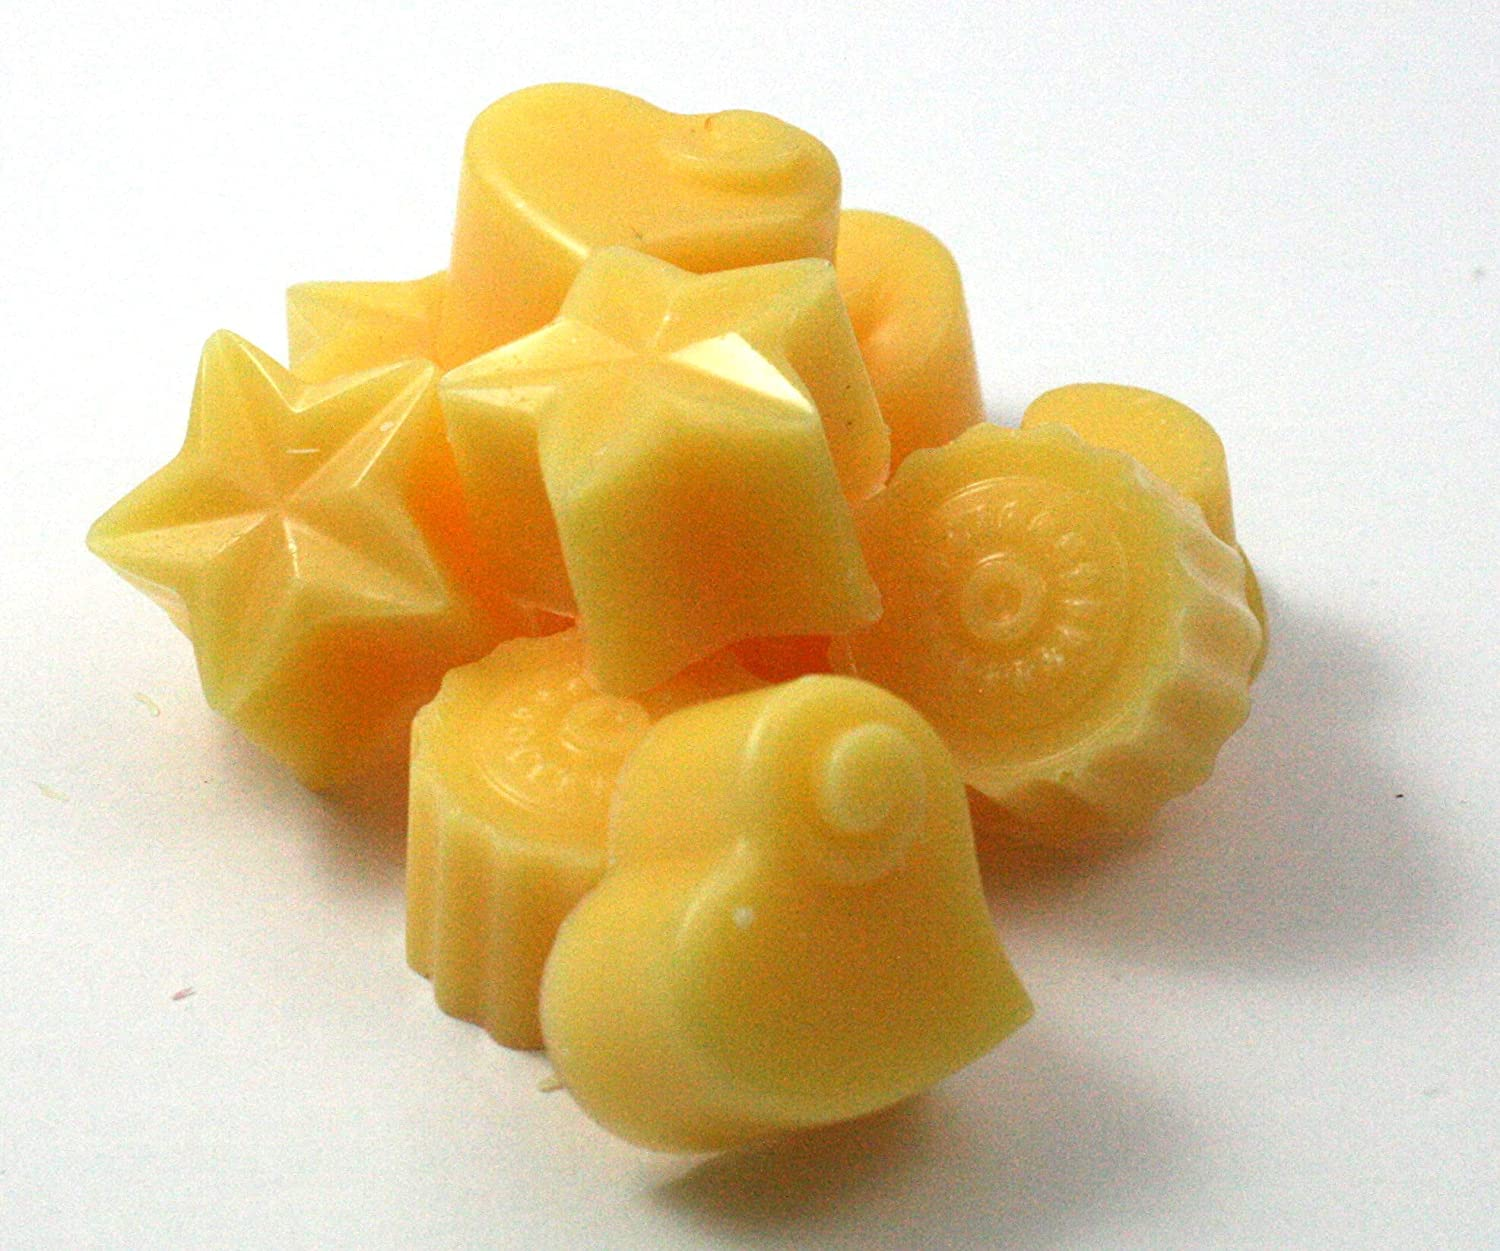 Handmade Premium Quality Highly Scented Wax Melts Christmas Tree 10 x 5g Melts in each pack